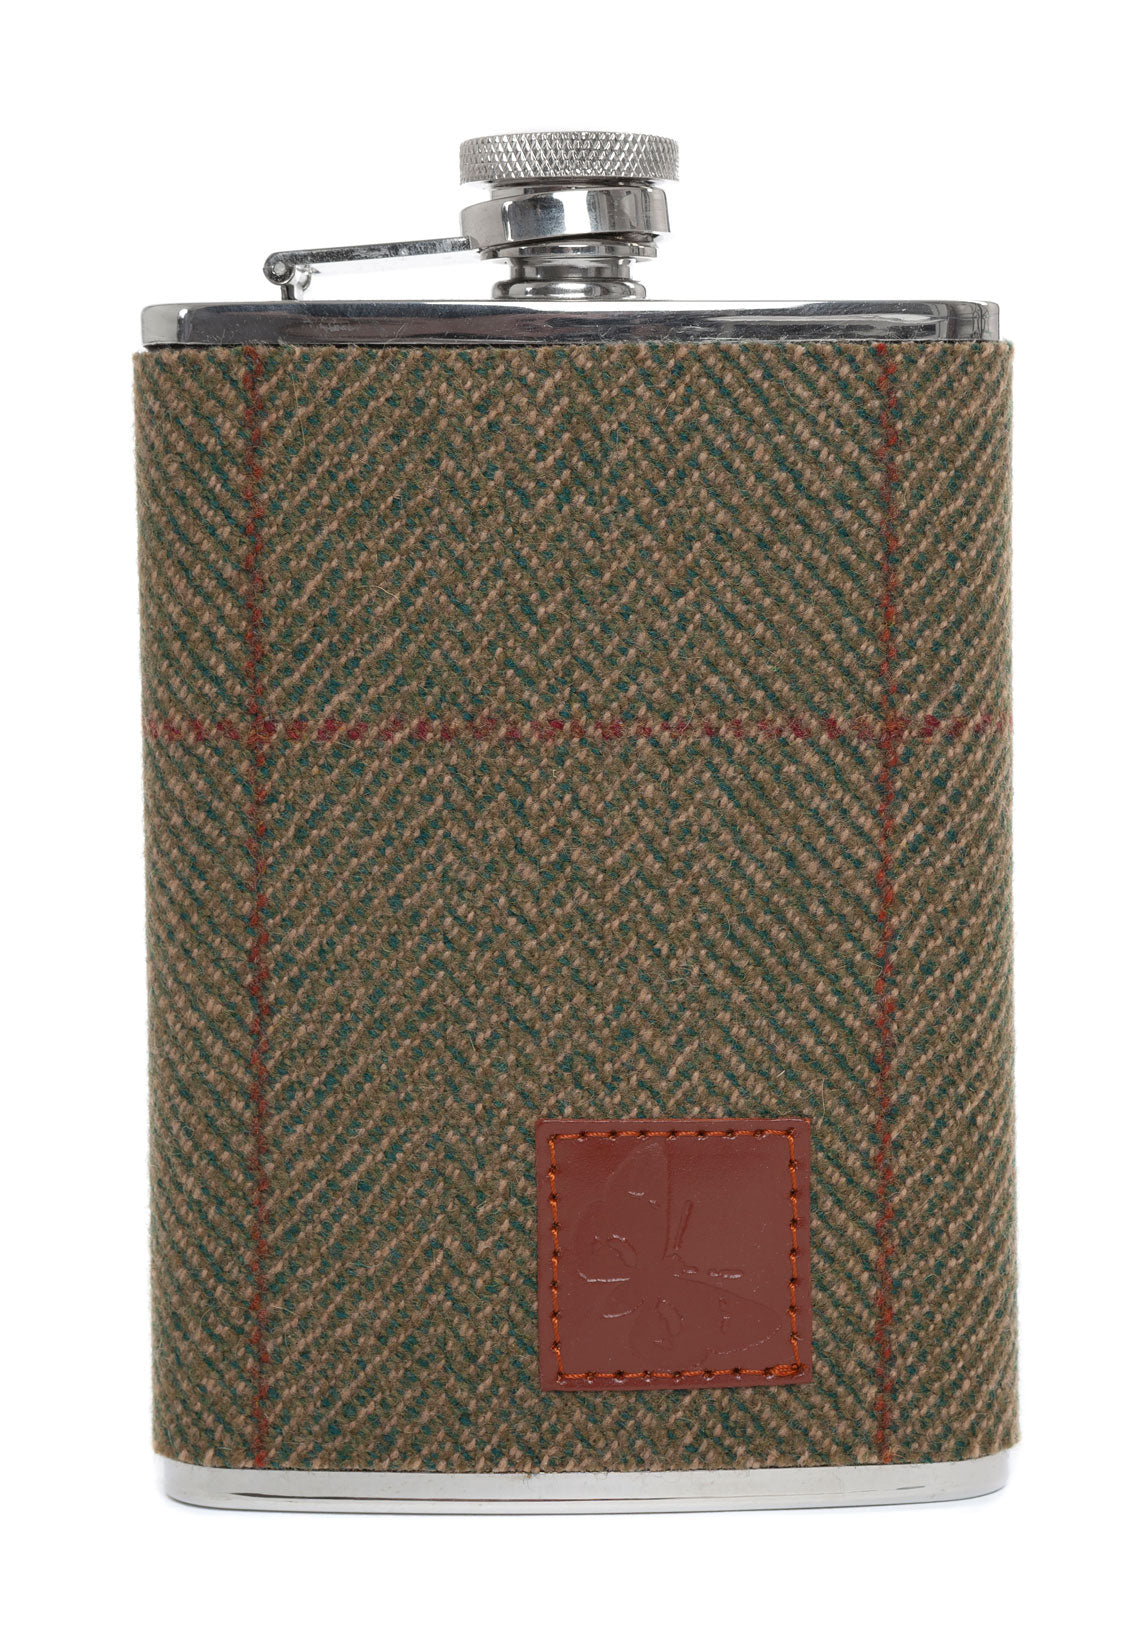 8 ounce hipflask in green prestigious Lovat Mill tweed design by Regent, featuring traditional screw closure.